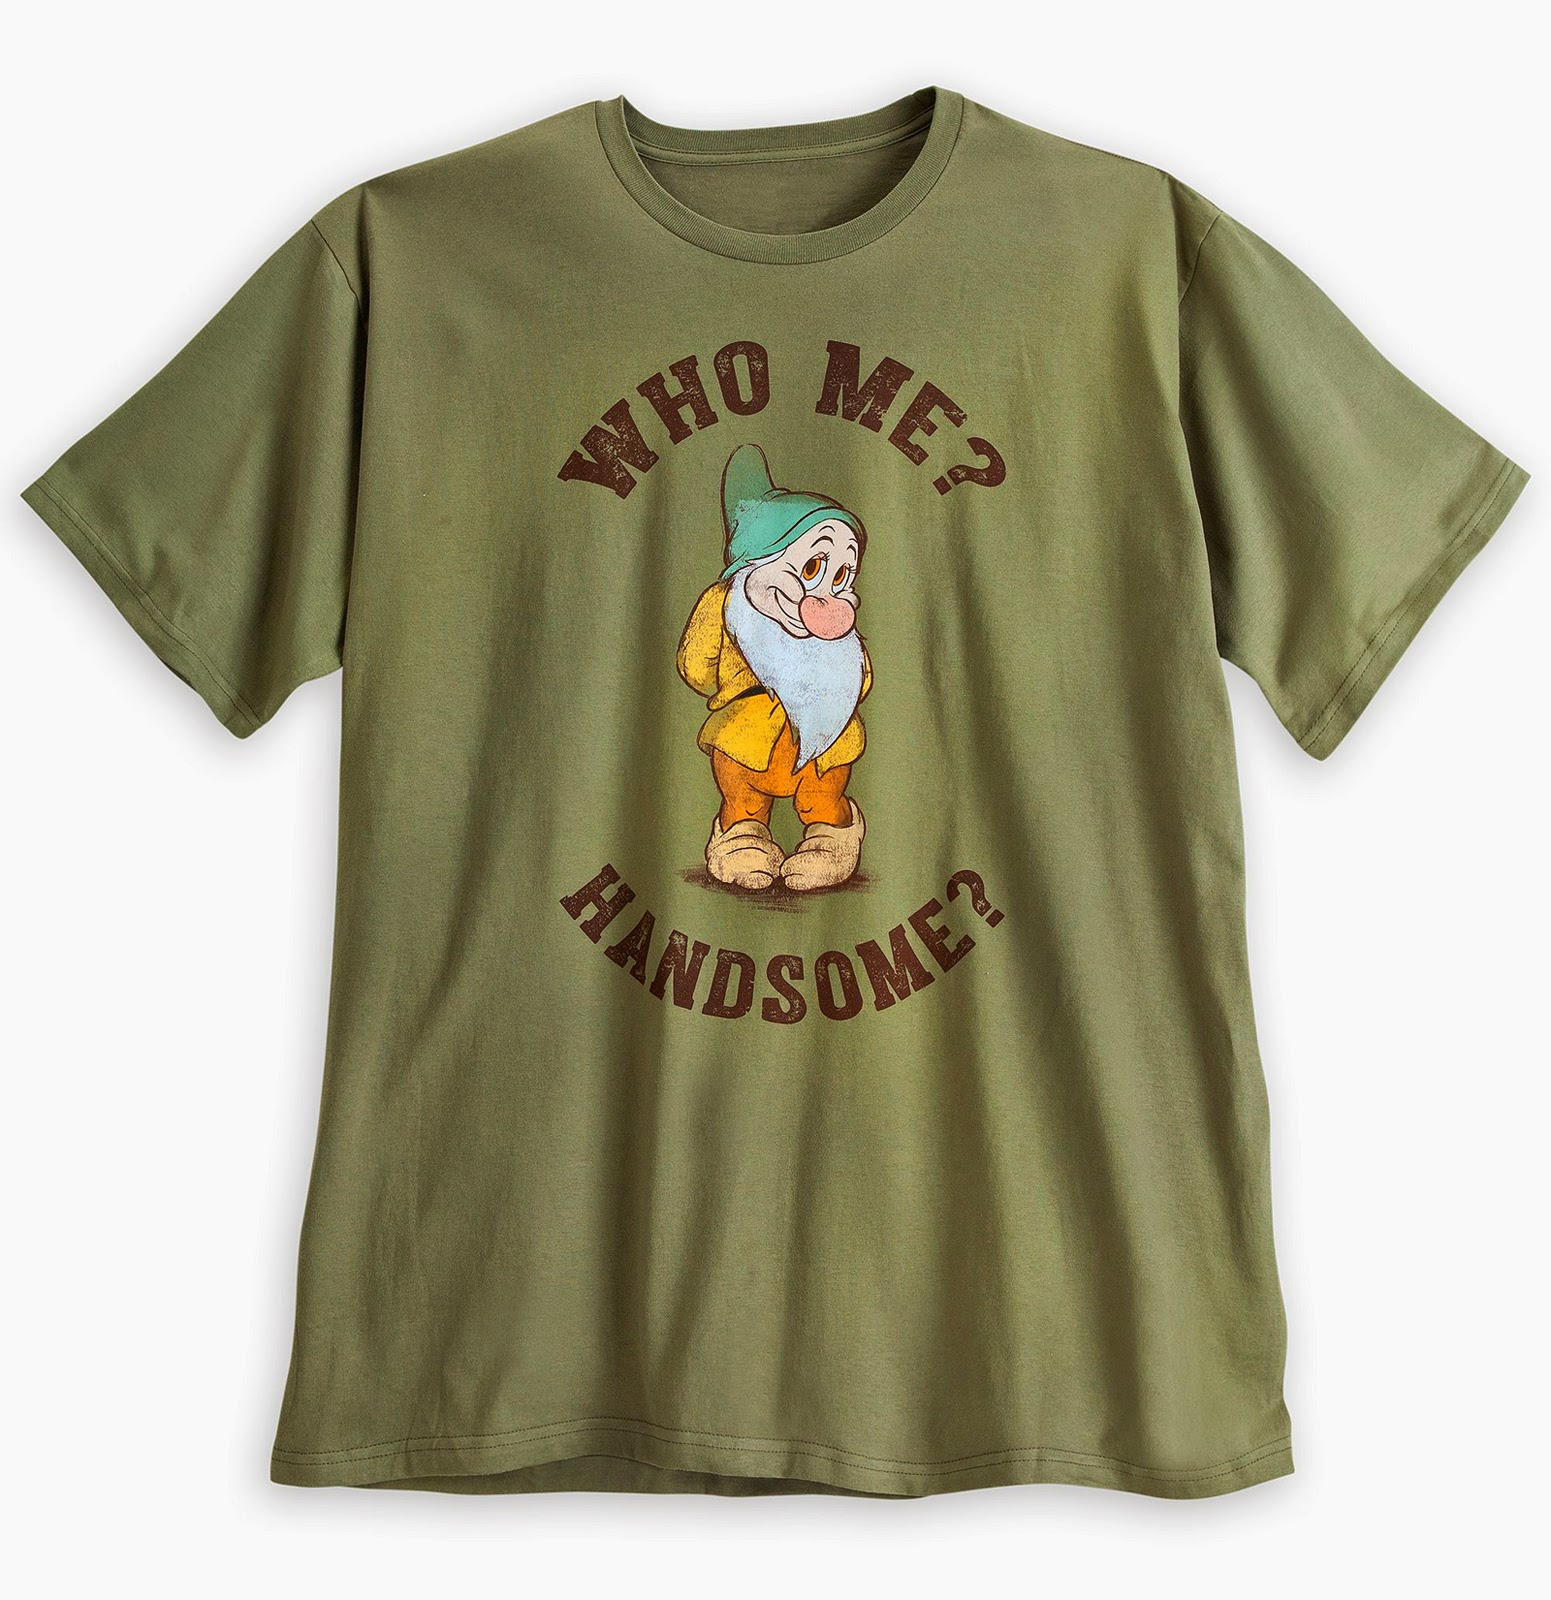 1abcb70667 Seen December 2014 online at Disney Store. 100% organic cotton. Color   brown. Retail  19.95. Same shirt in plus size. Color  green.  22.95.